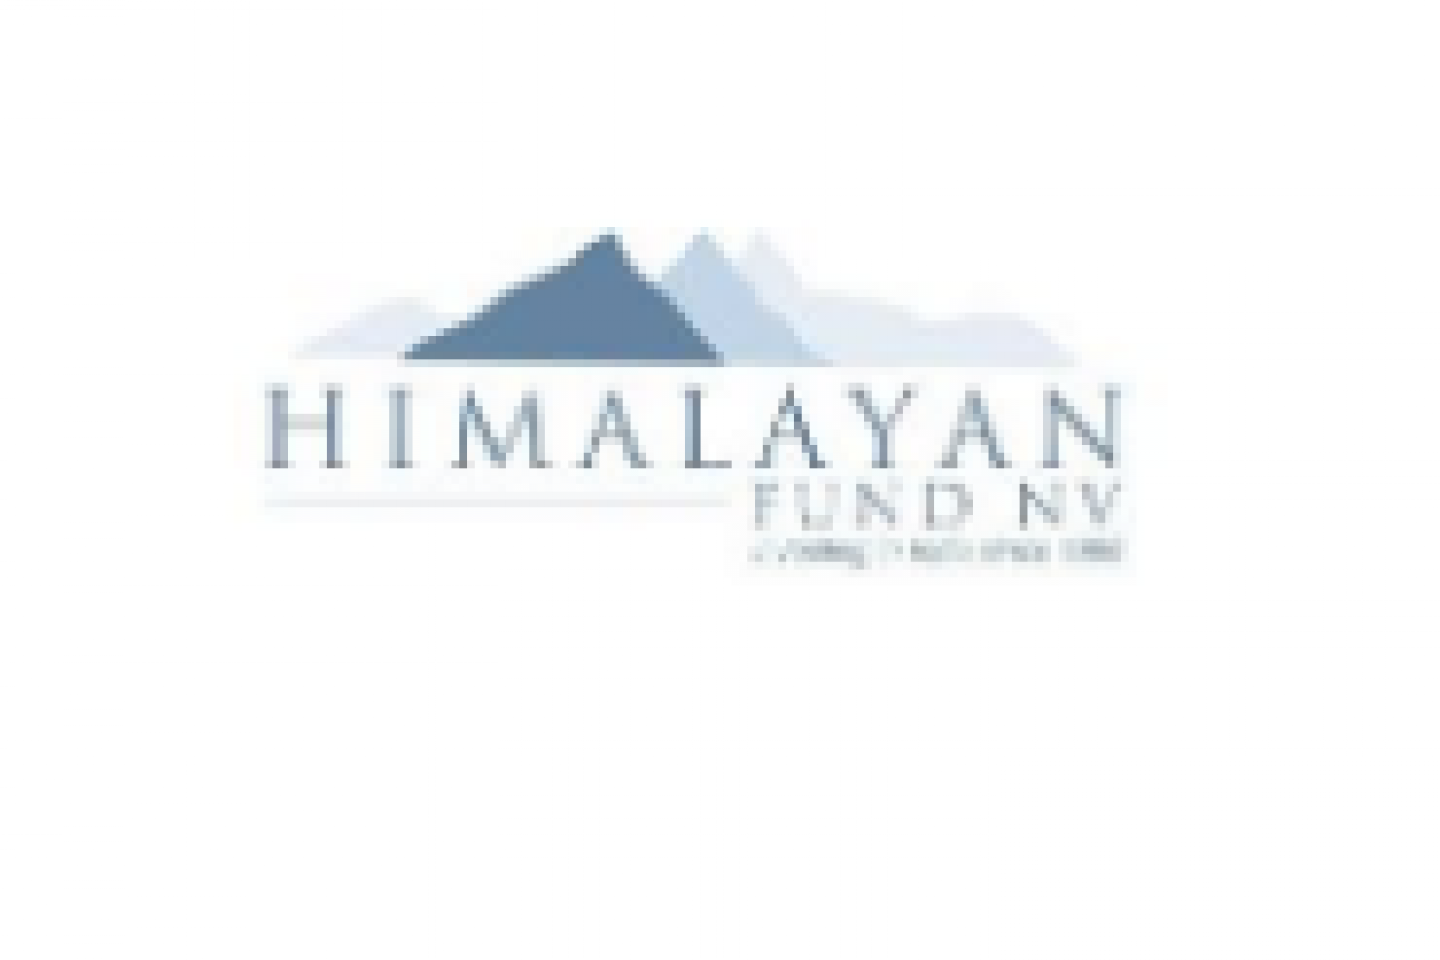 Himalayan Fund NV